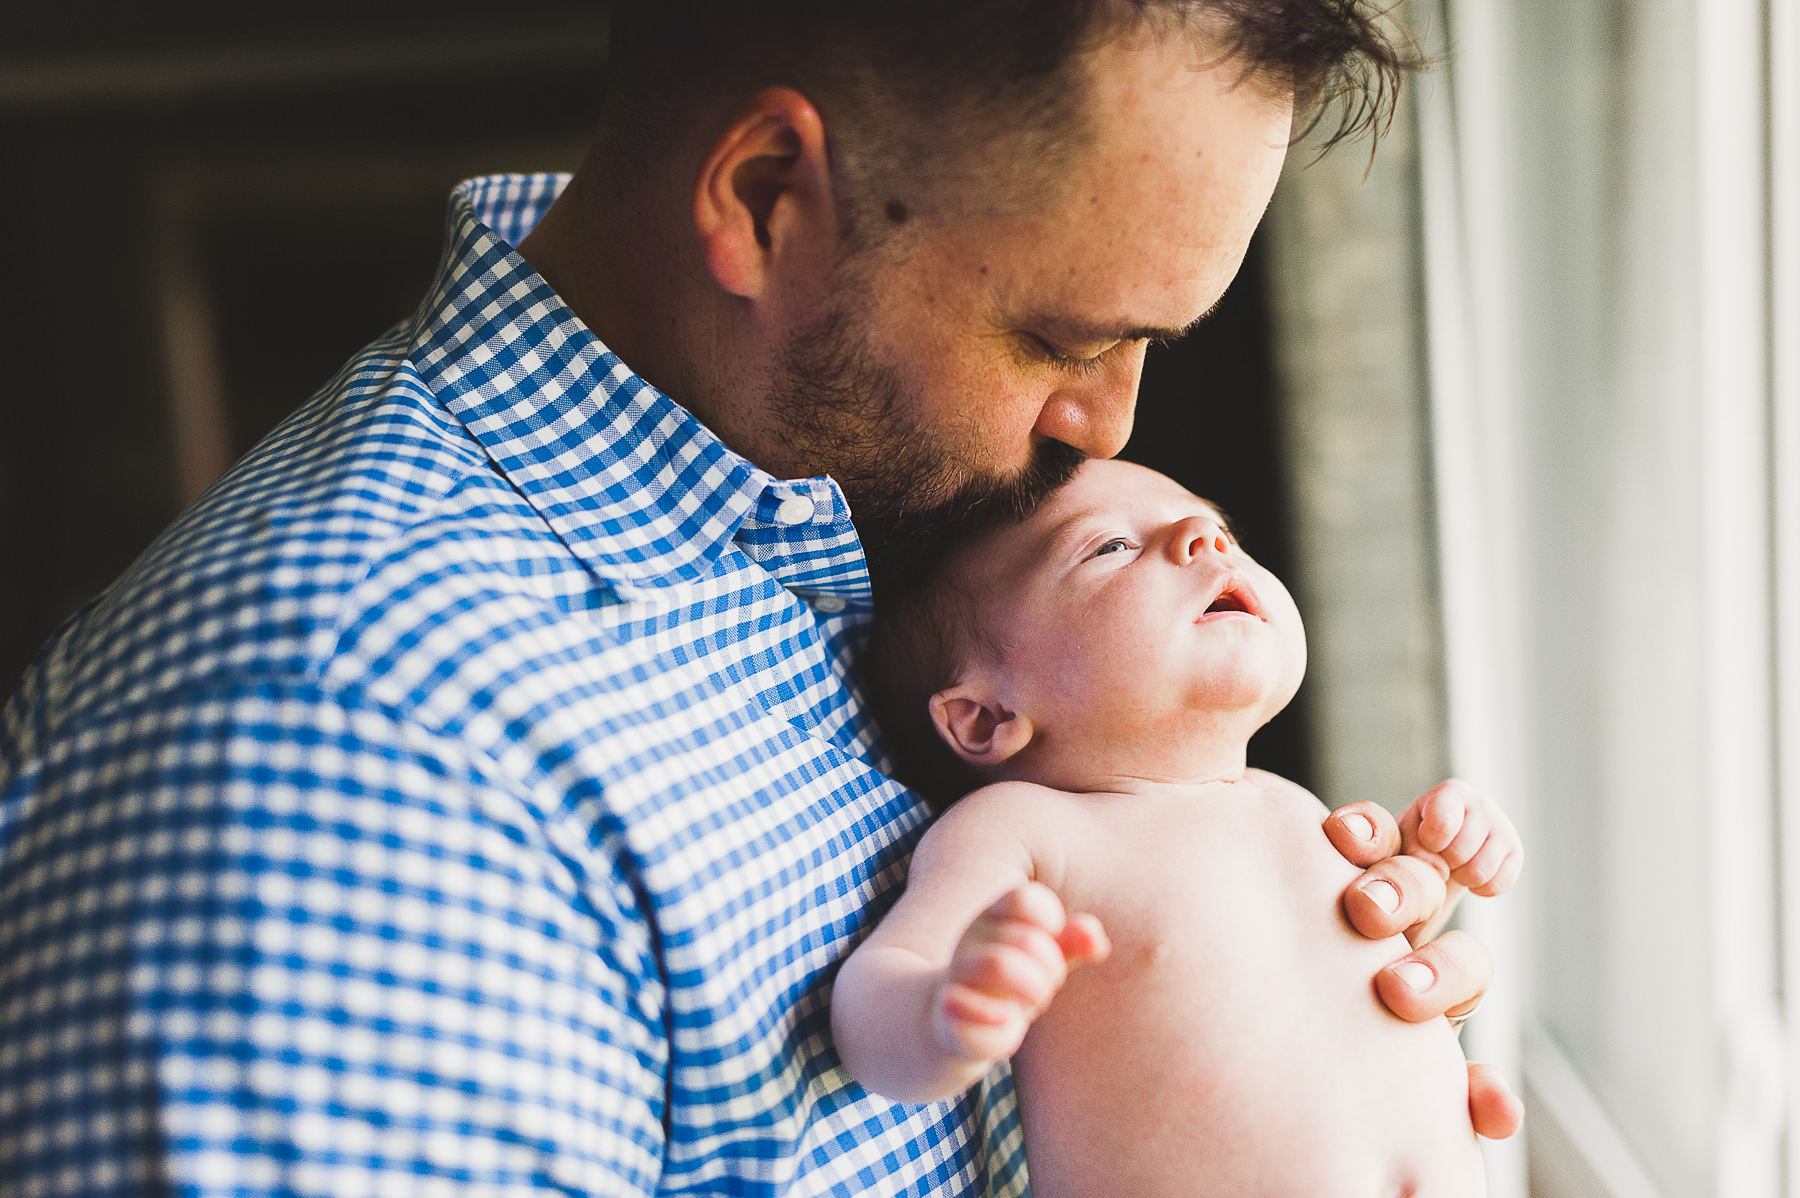 breighton-and-basette-photography-copyrighted-image-blog-croix-newborn-048.jpg